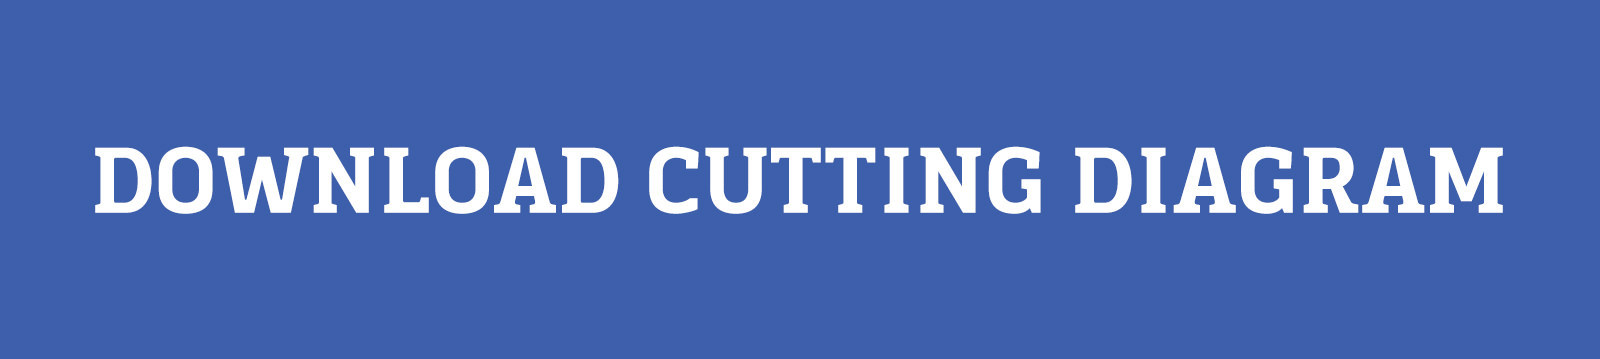 download cutting diagram